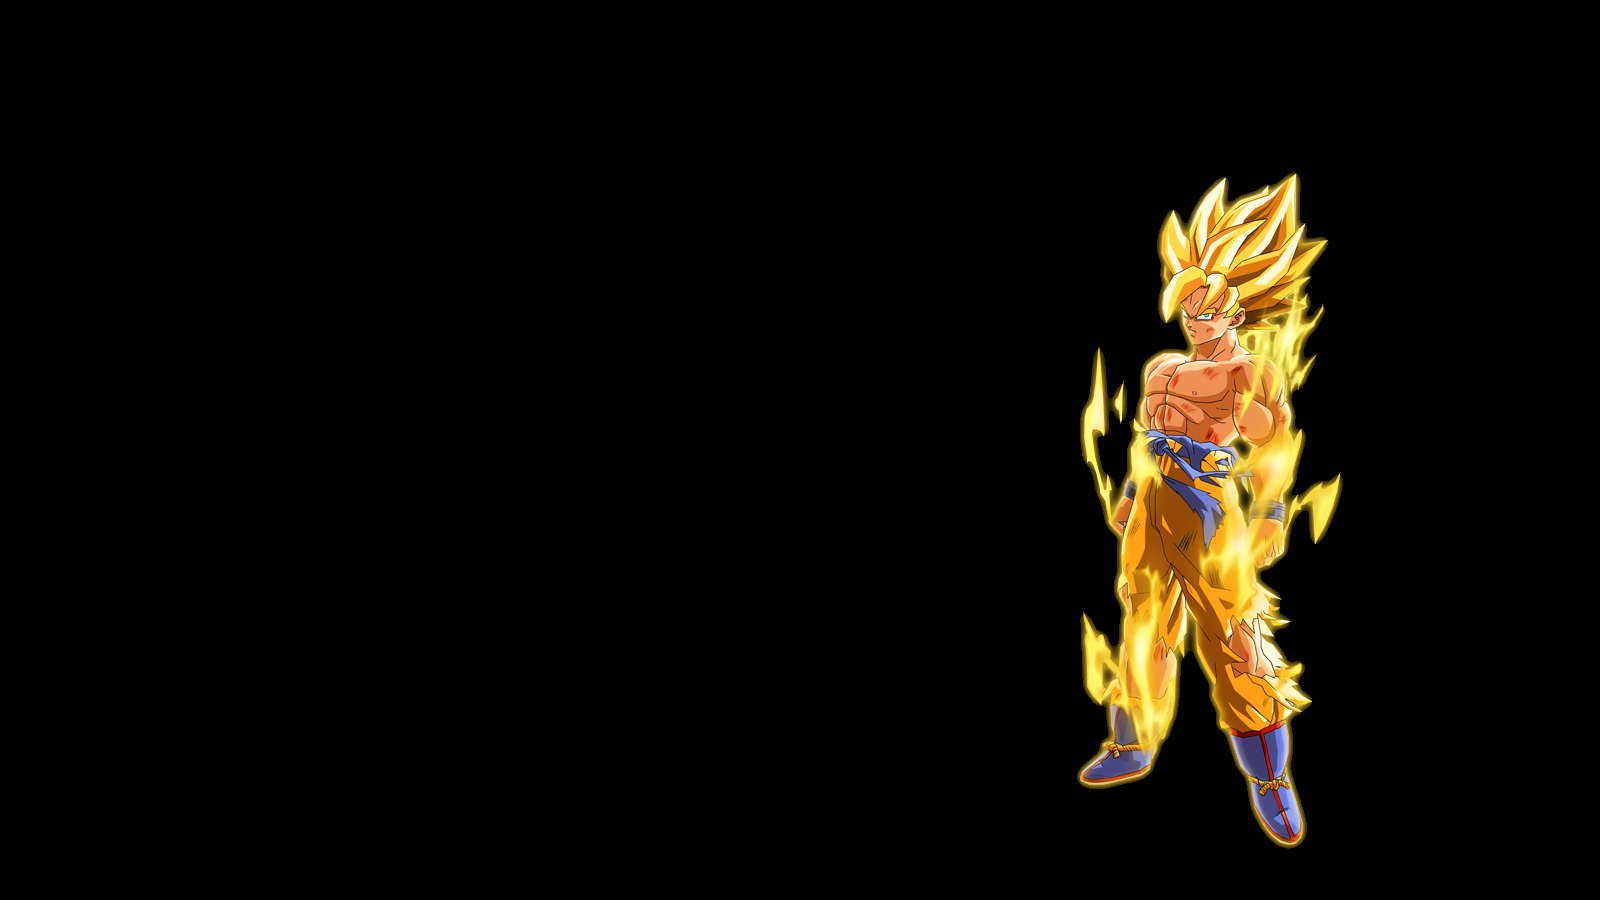 Dragon Ball Z Backgrounds Group (80+)